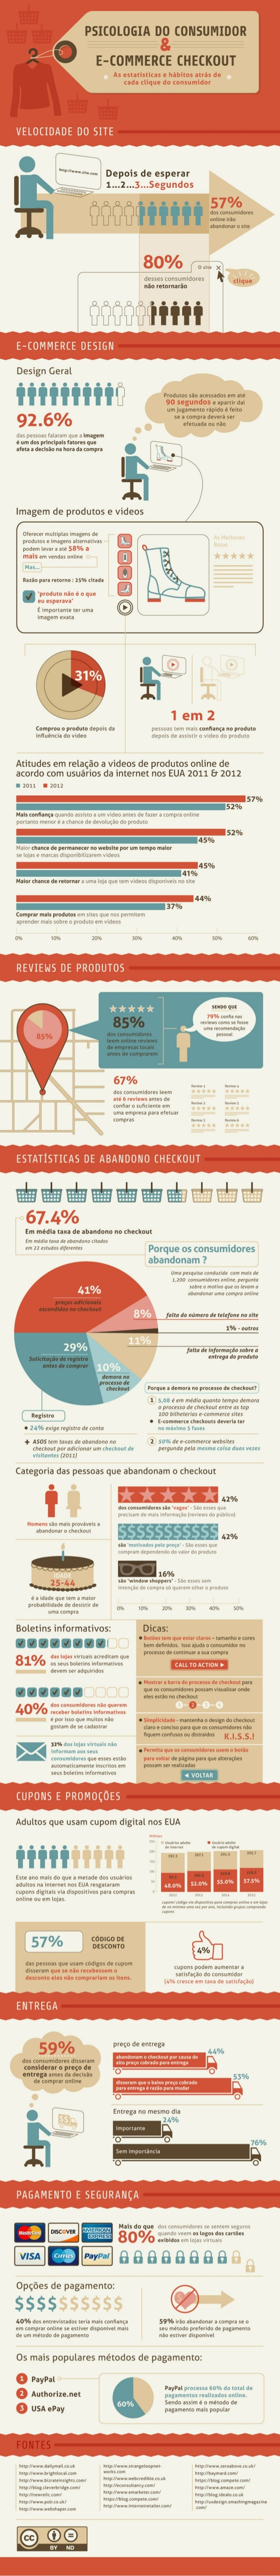 Psicologia do Consumidor & Ecommerce Checkout